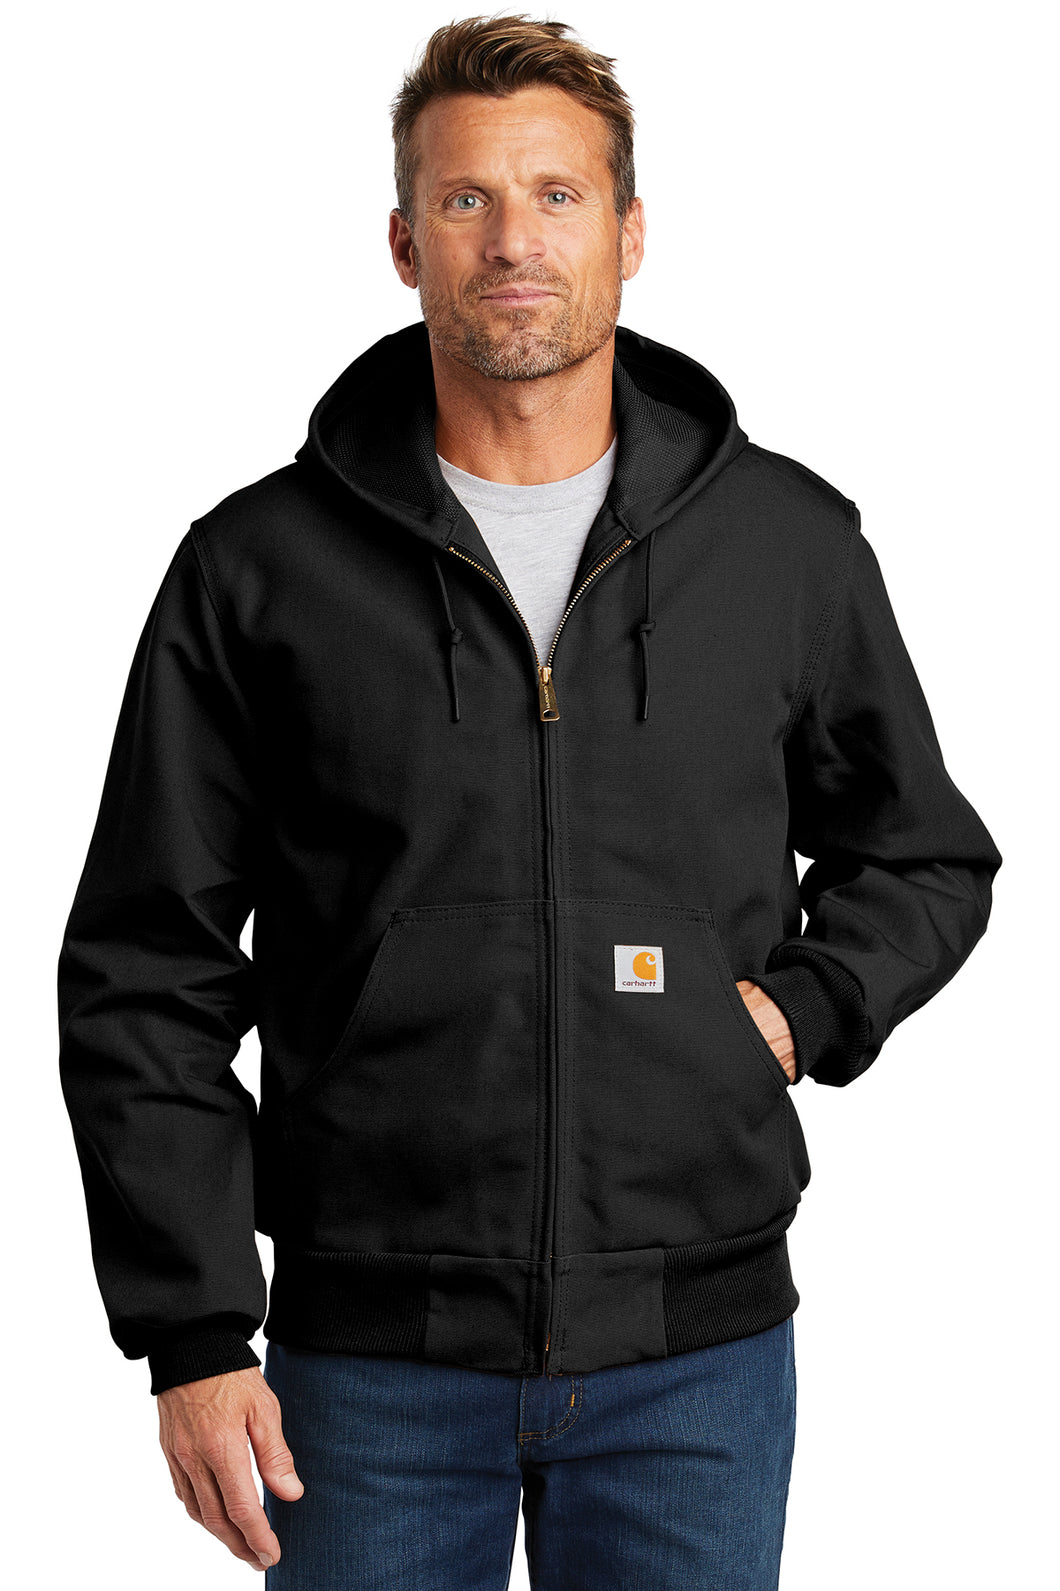 CTTJ131 - Carhartt ® Tall Thermal-Lined Duck Active Jac